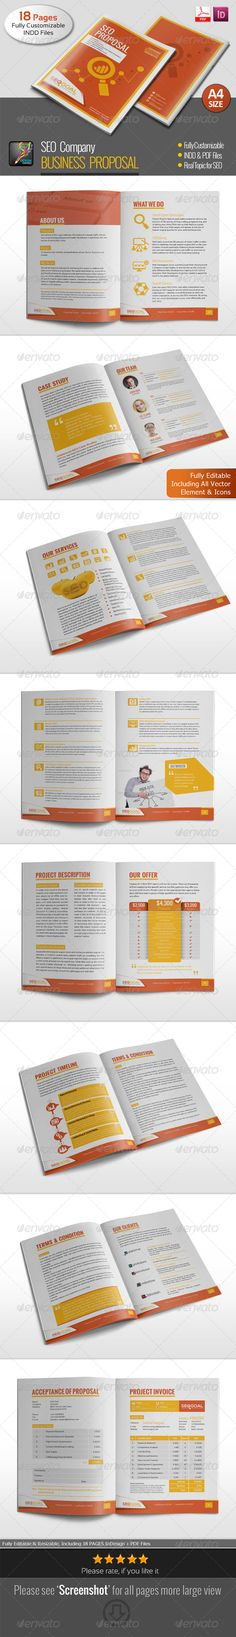 Quick Business Proposal Template Business proposal template - business proposal template download